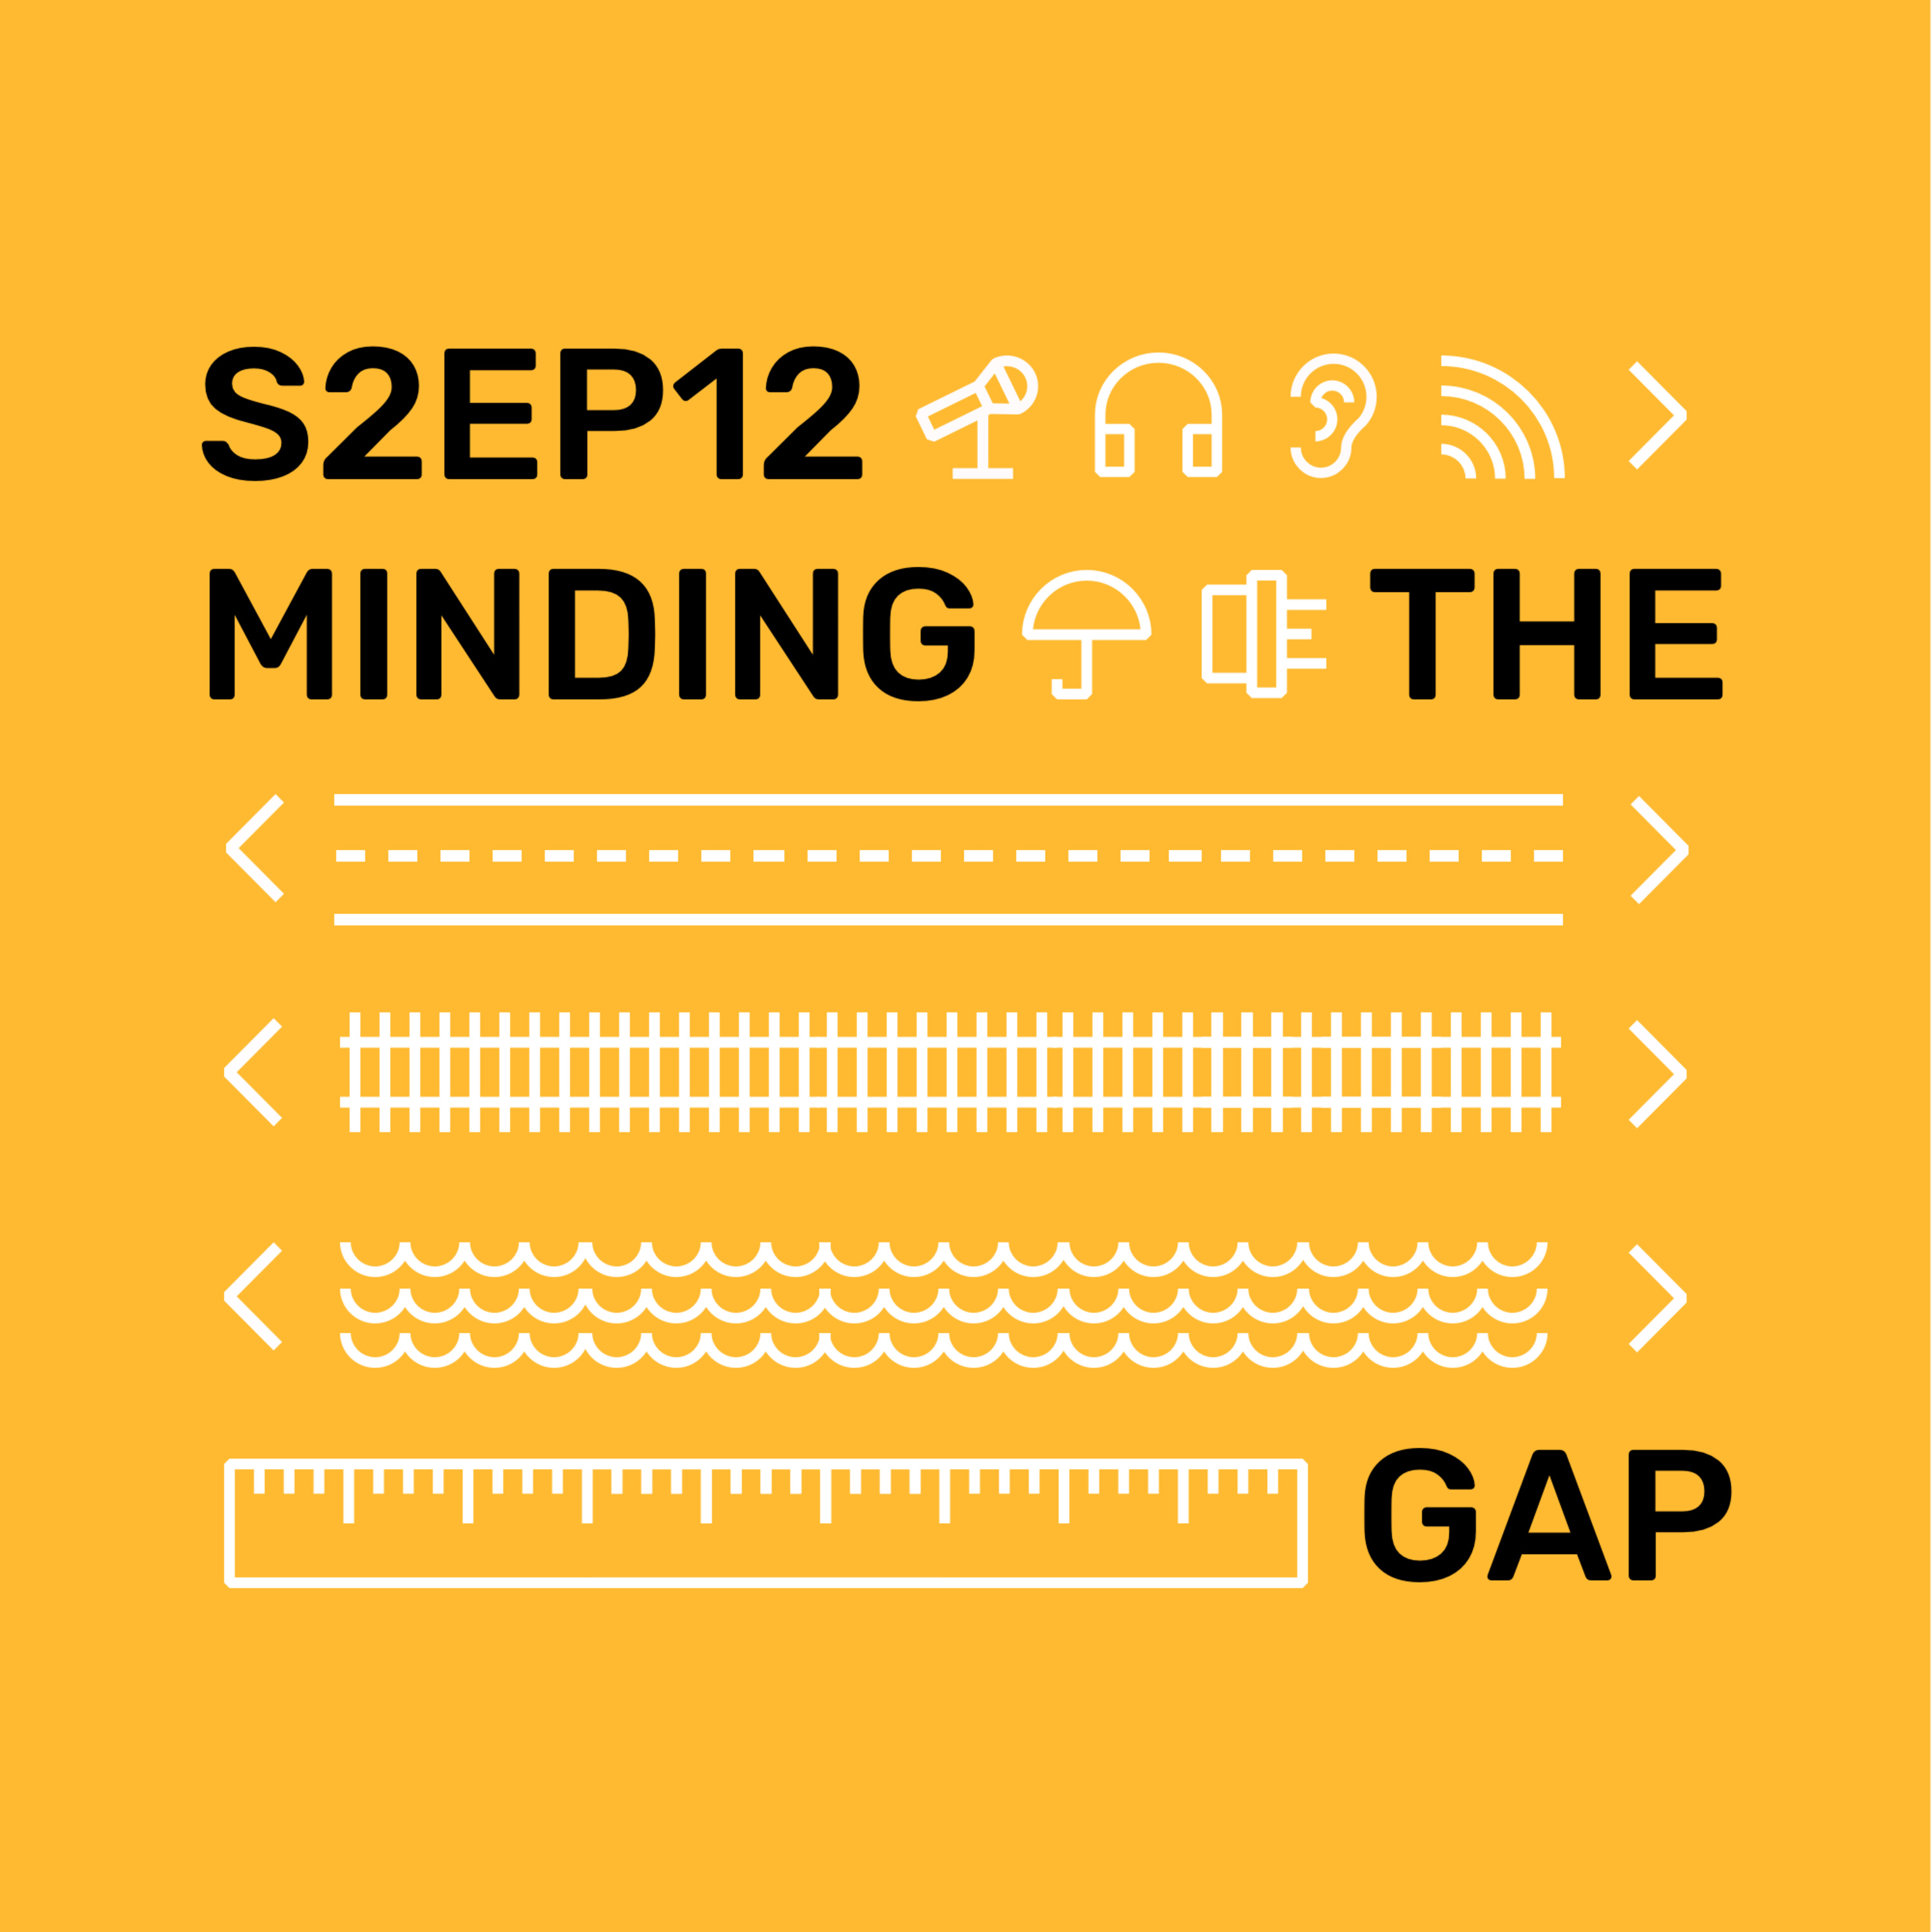 S2 Ep12 Minding The Gap